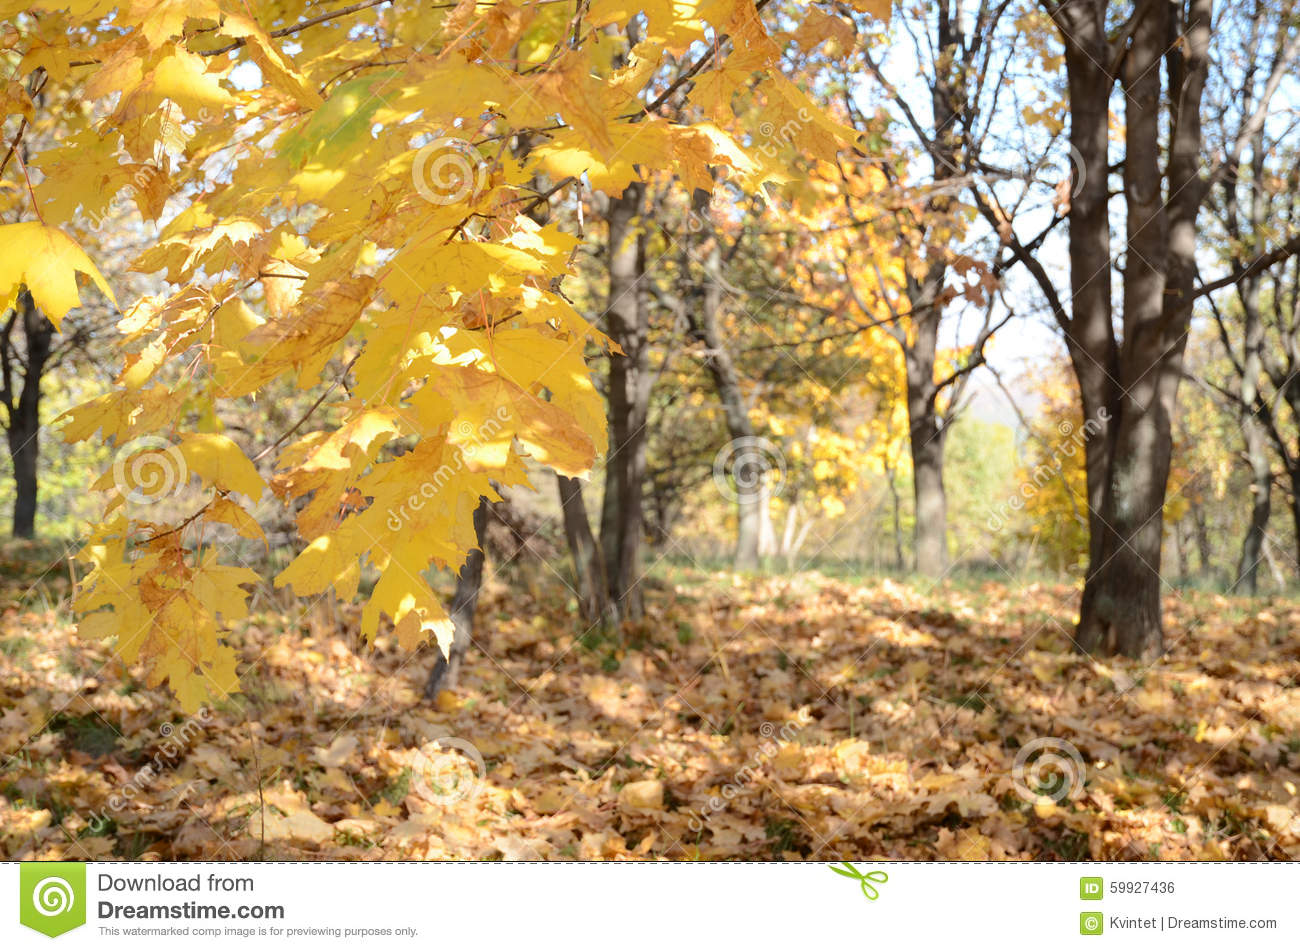 Abstract background with yellow maple leaves in autumn forest in the wild